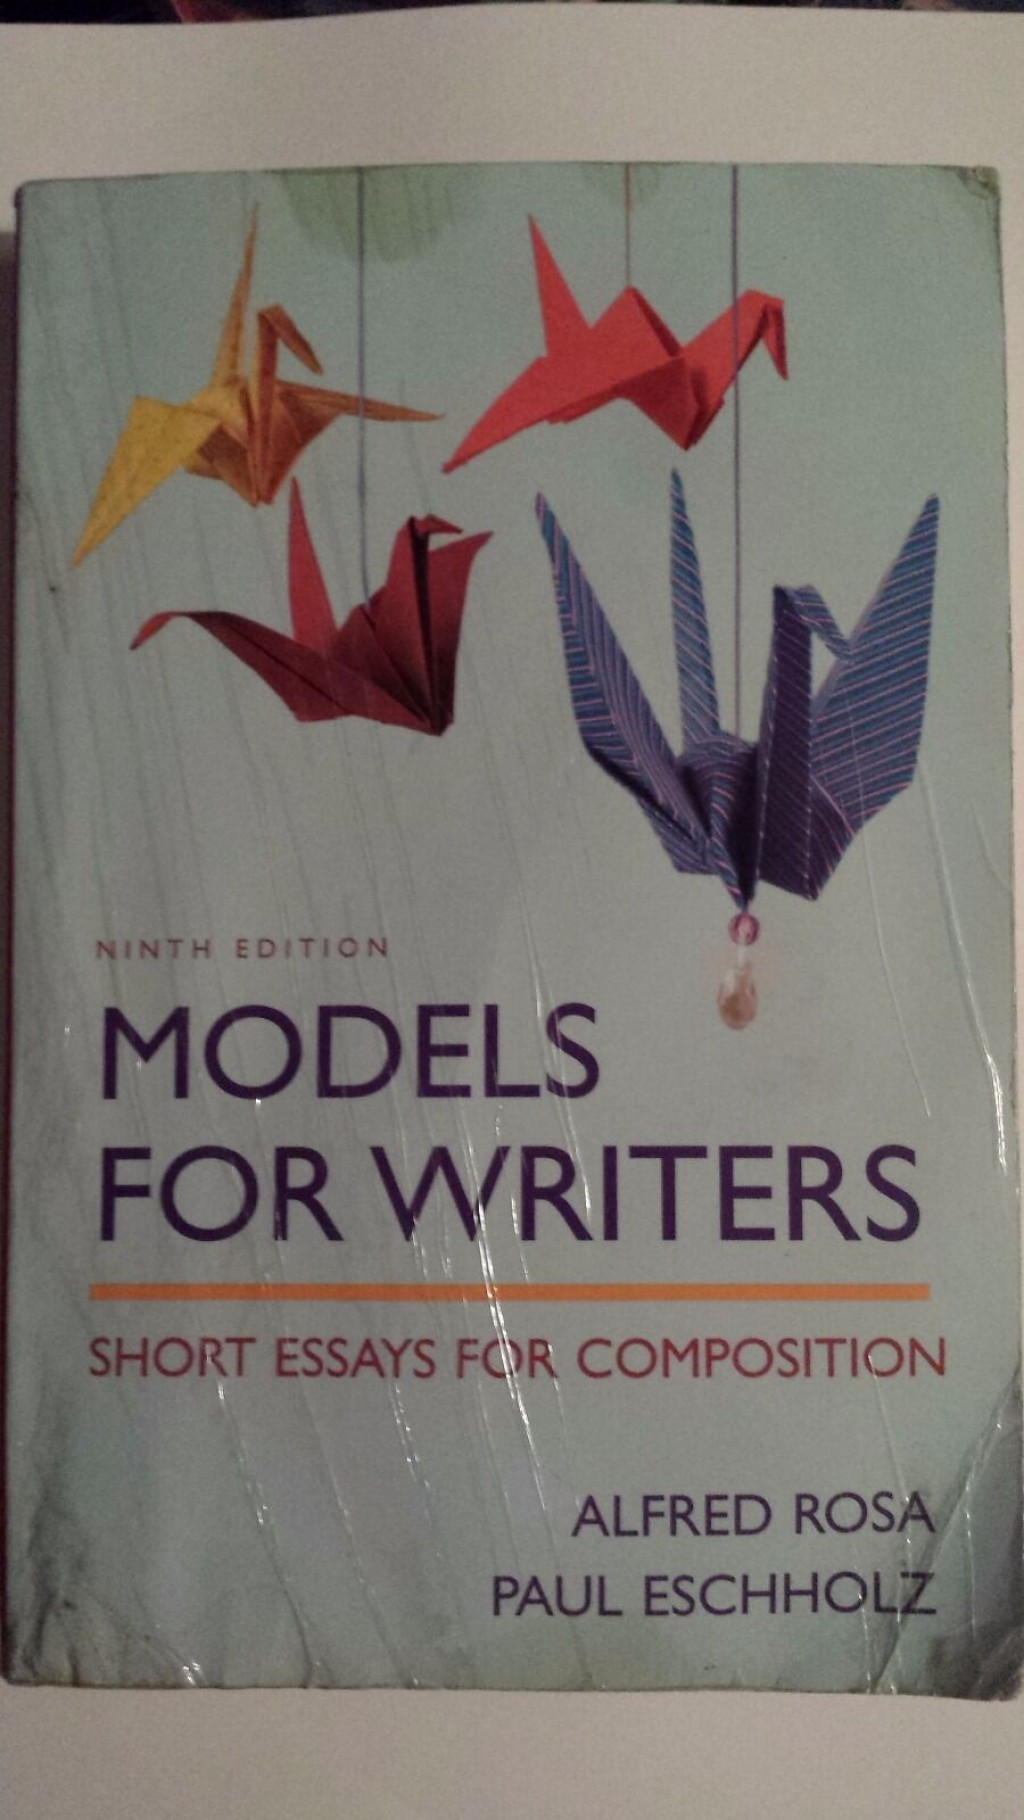 016 S L1600 Models For Writers Short Essays Composition Essay Singular 12th Edition Pdf 13th Large